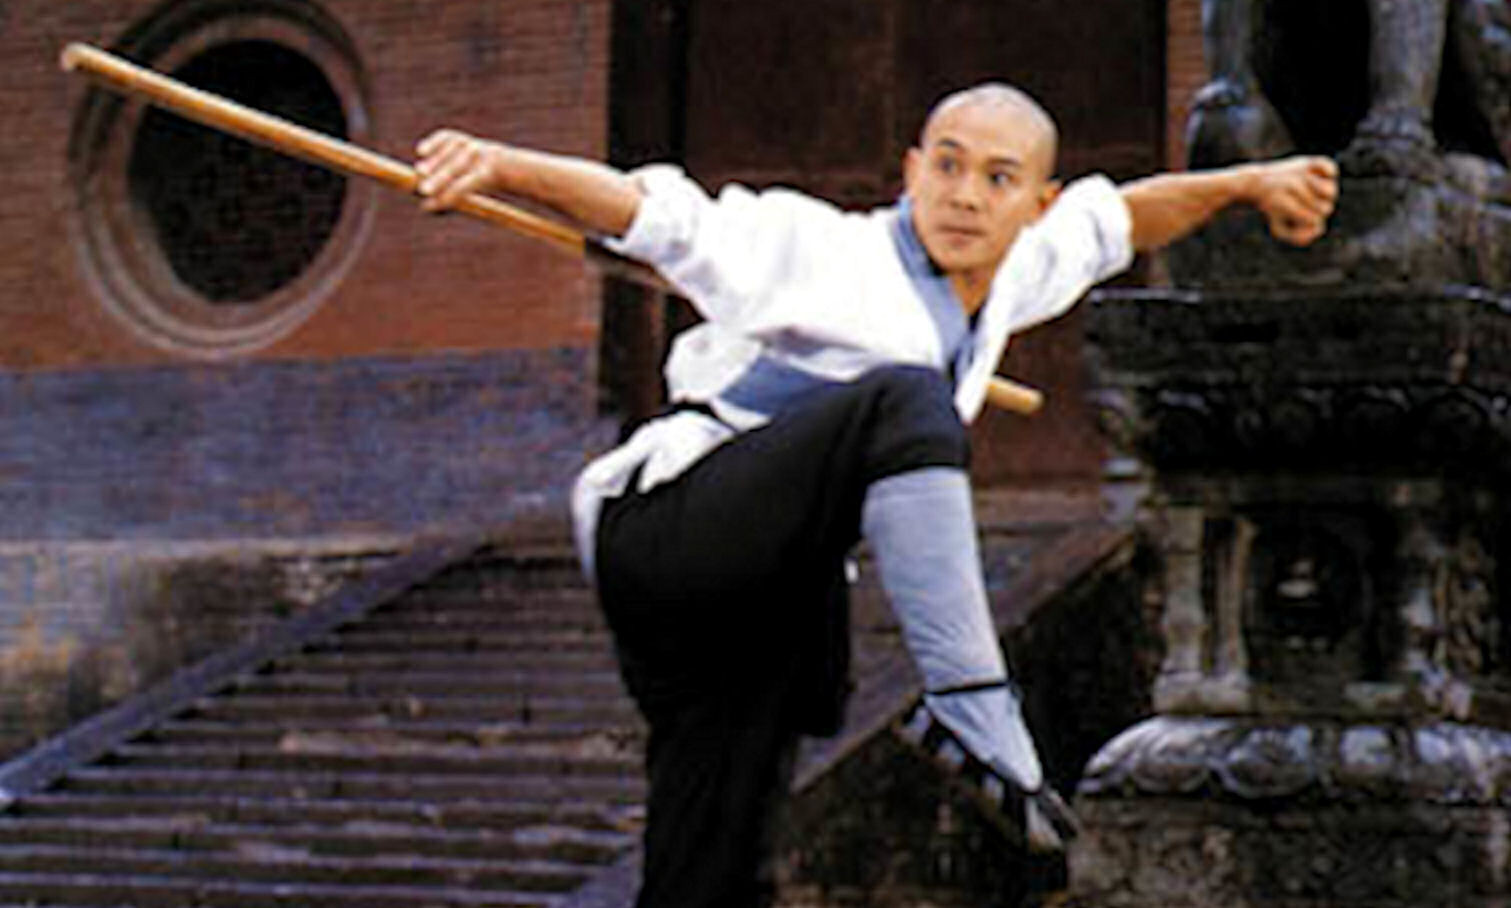 Top Martial Arts Action Stars and Their Training Backgrounds